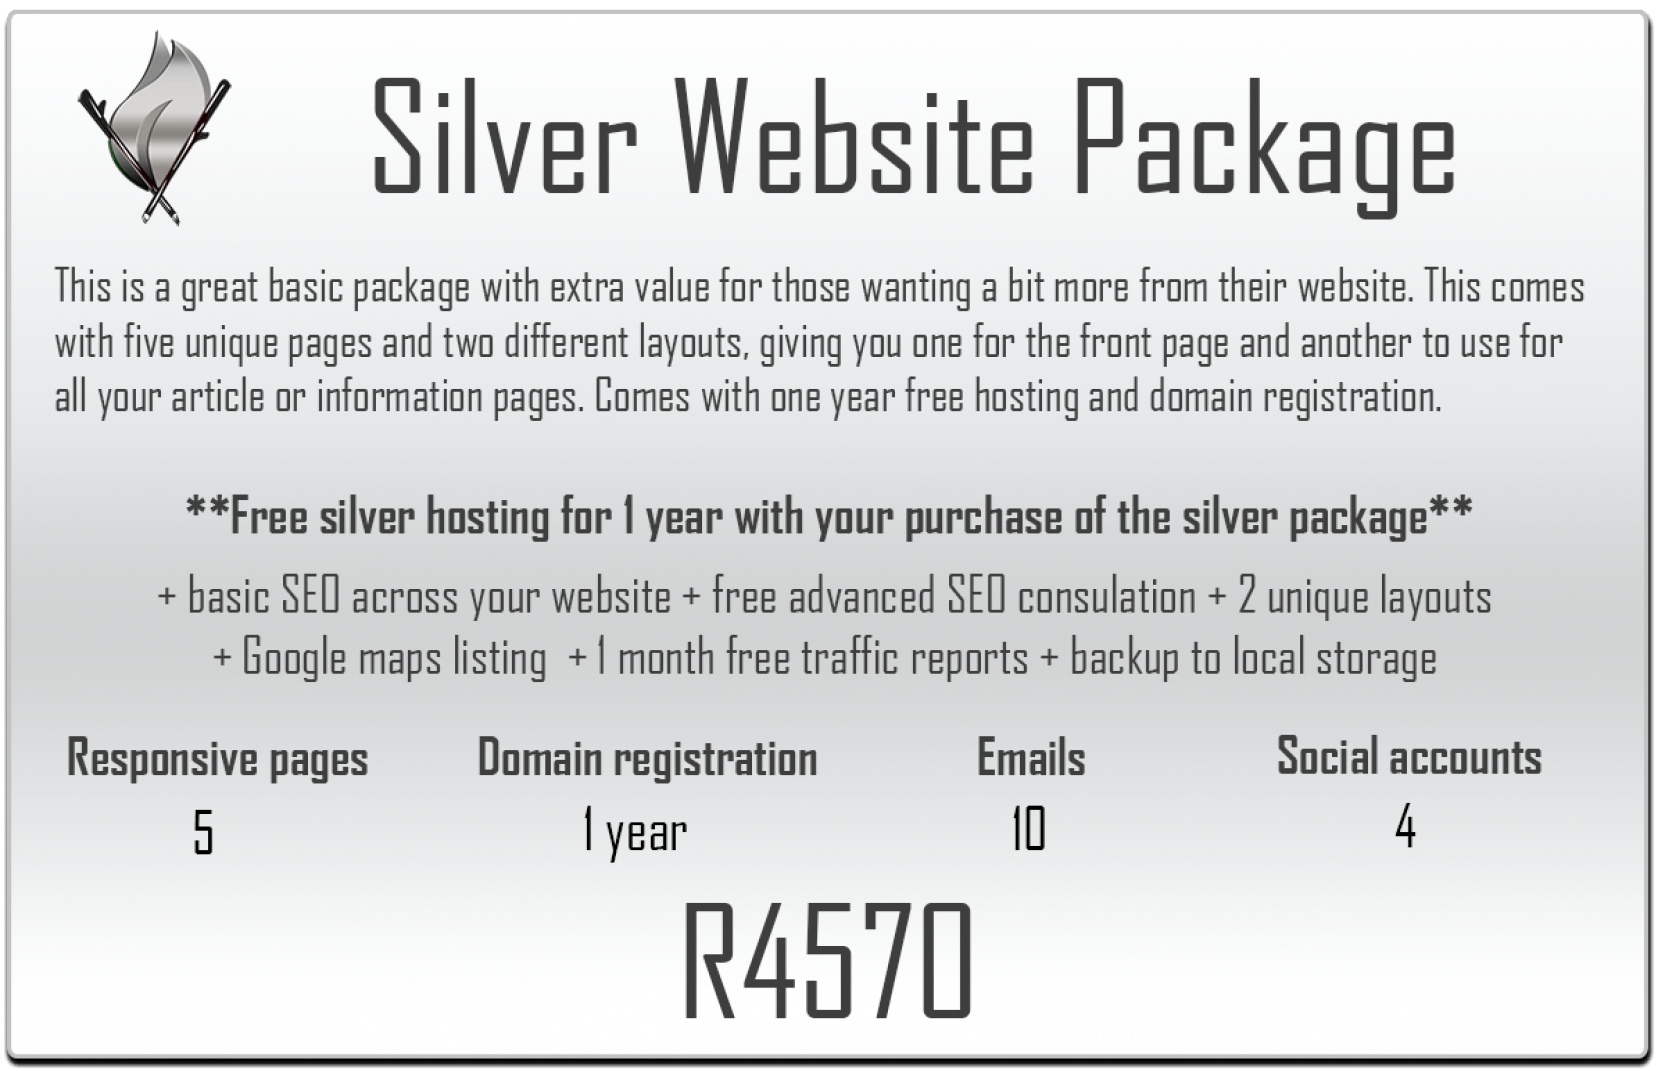 Silver website package